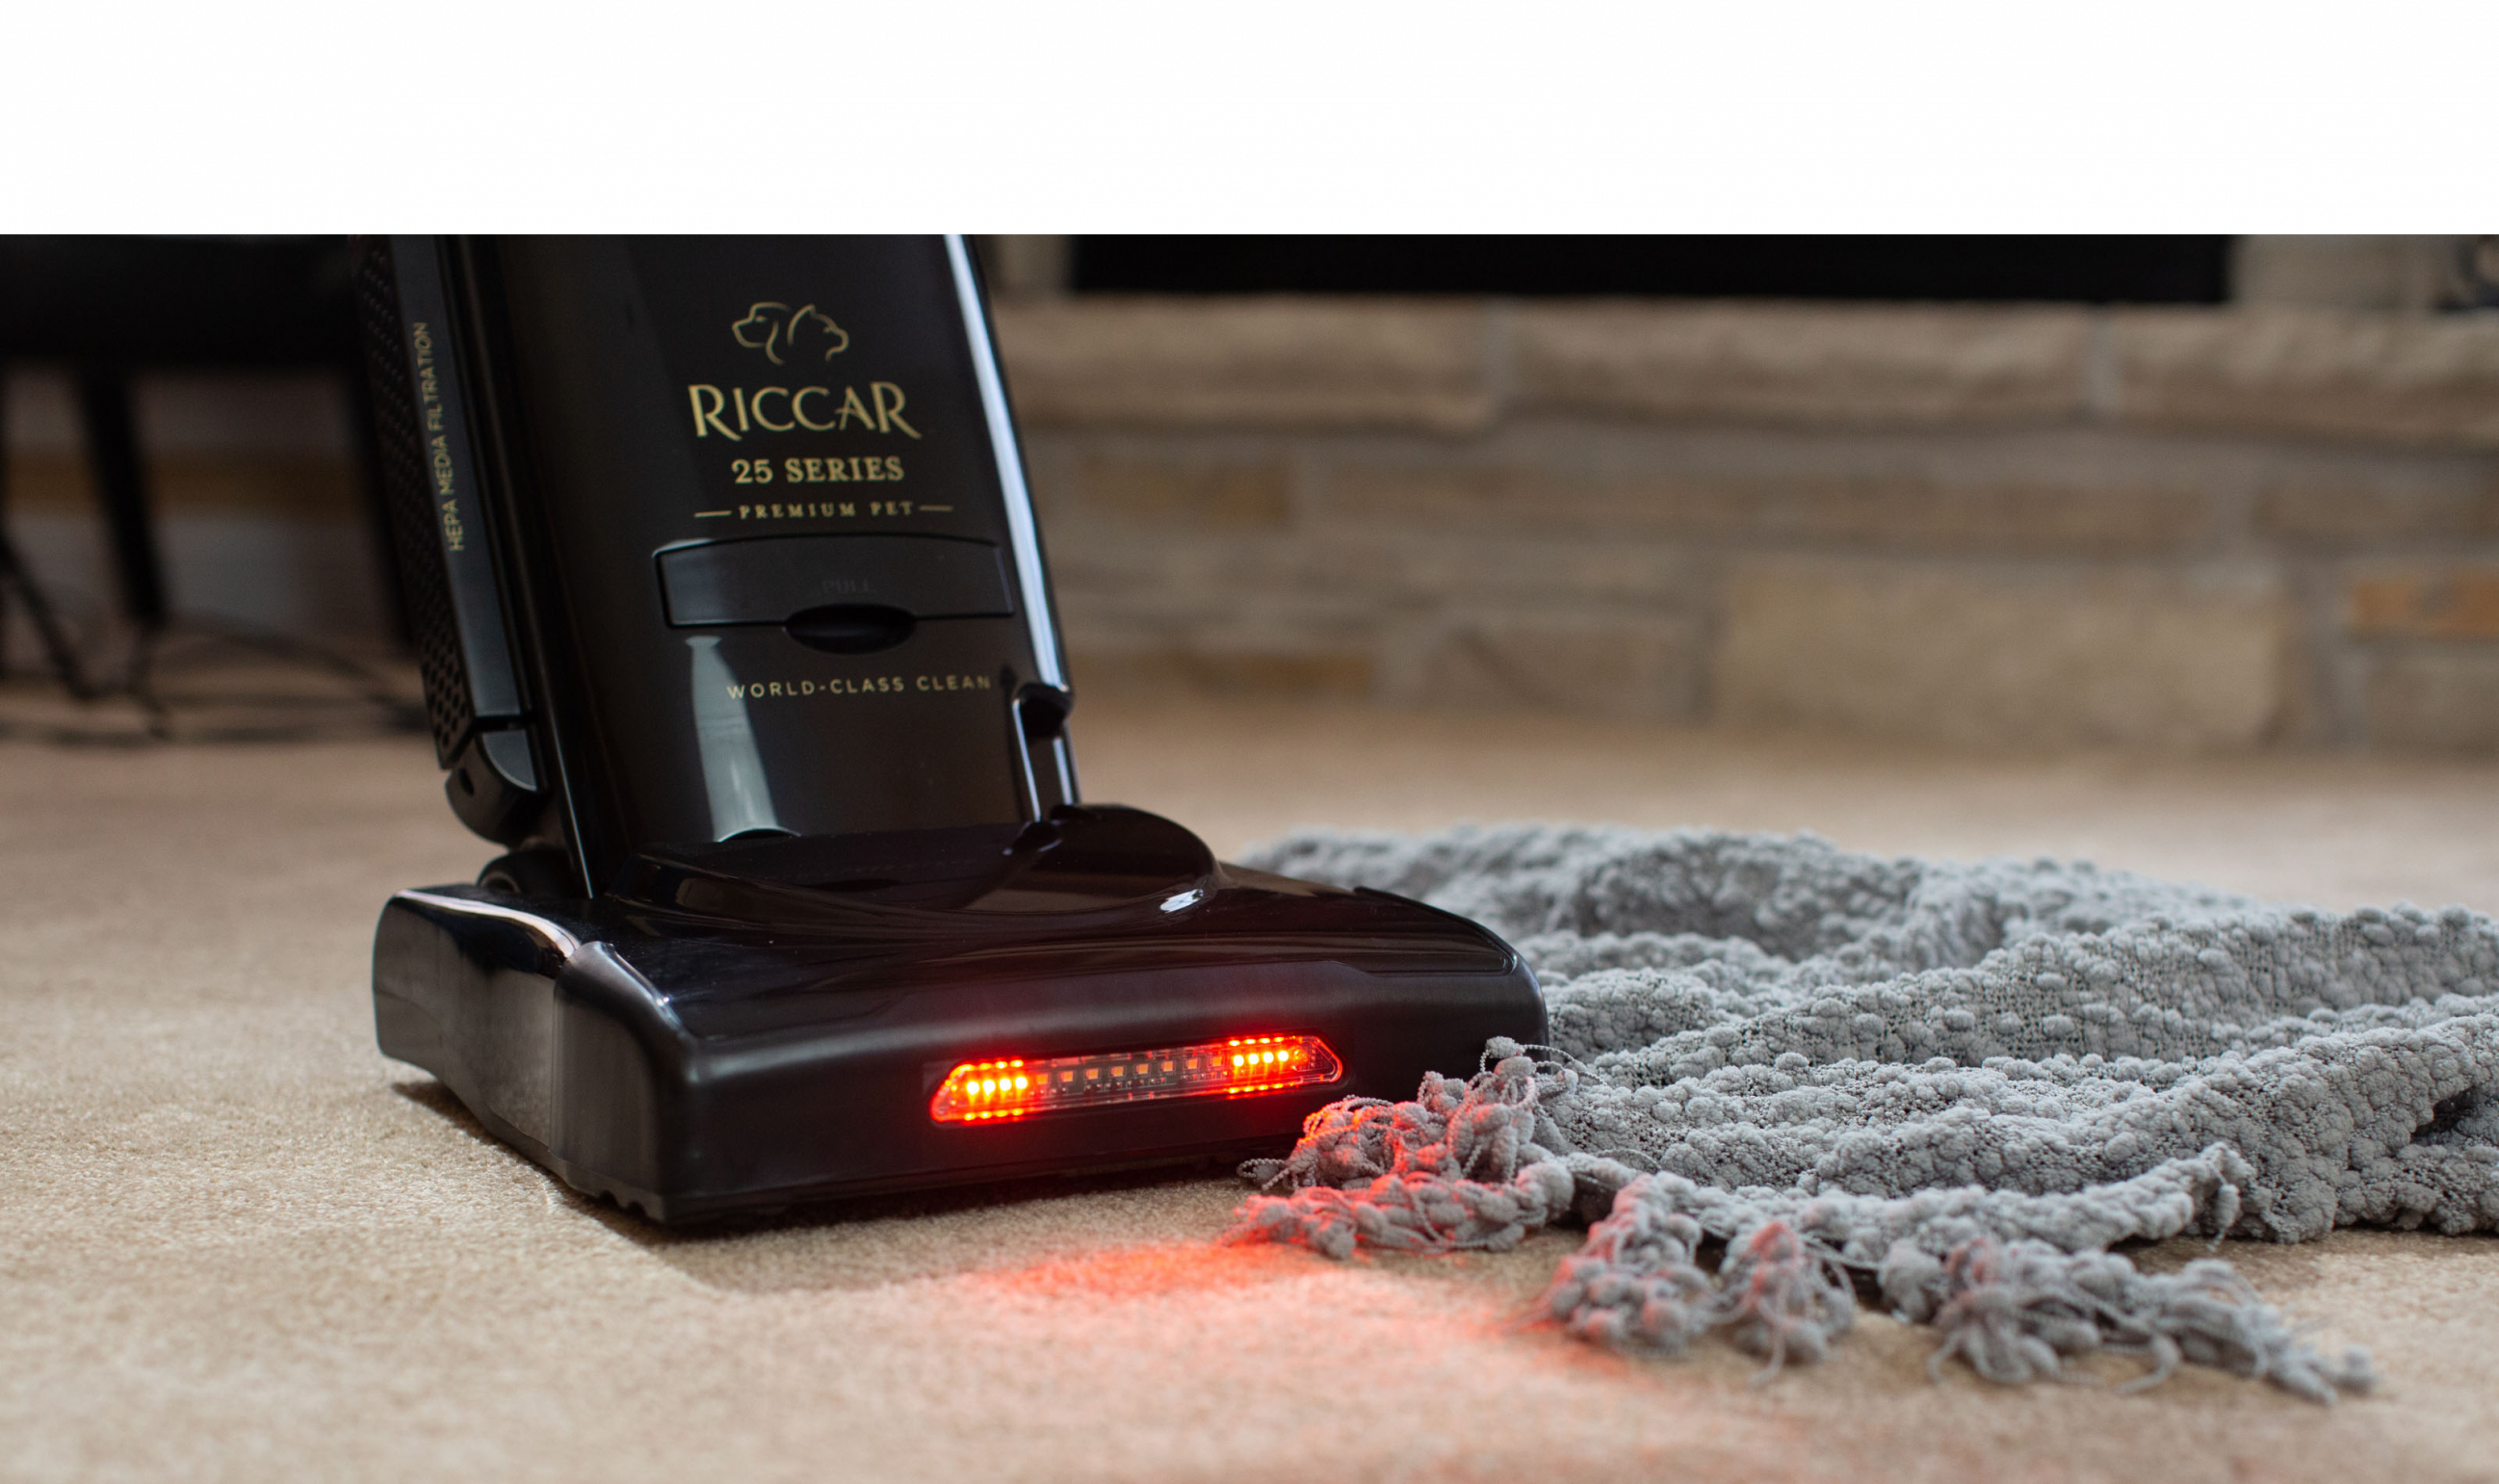 Riccar vacuum senses jam and shuts off the brushroll to protect the lifetime belt